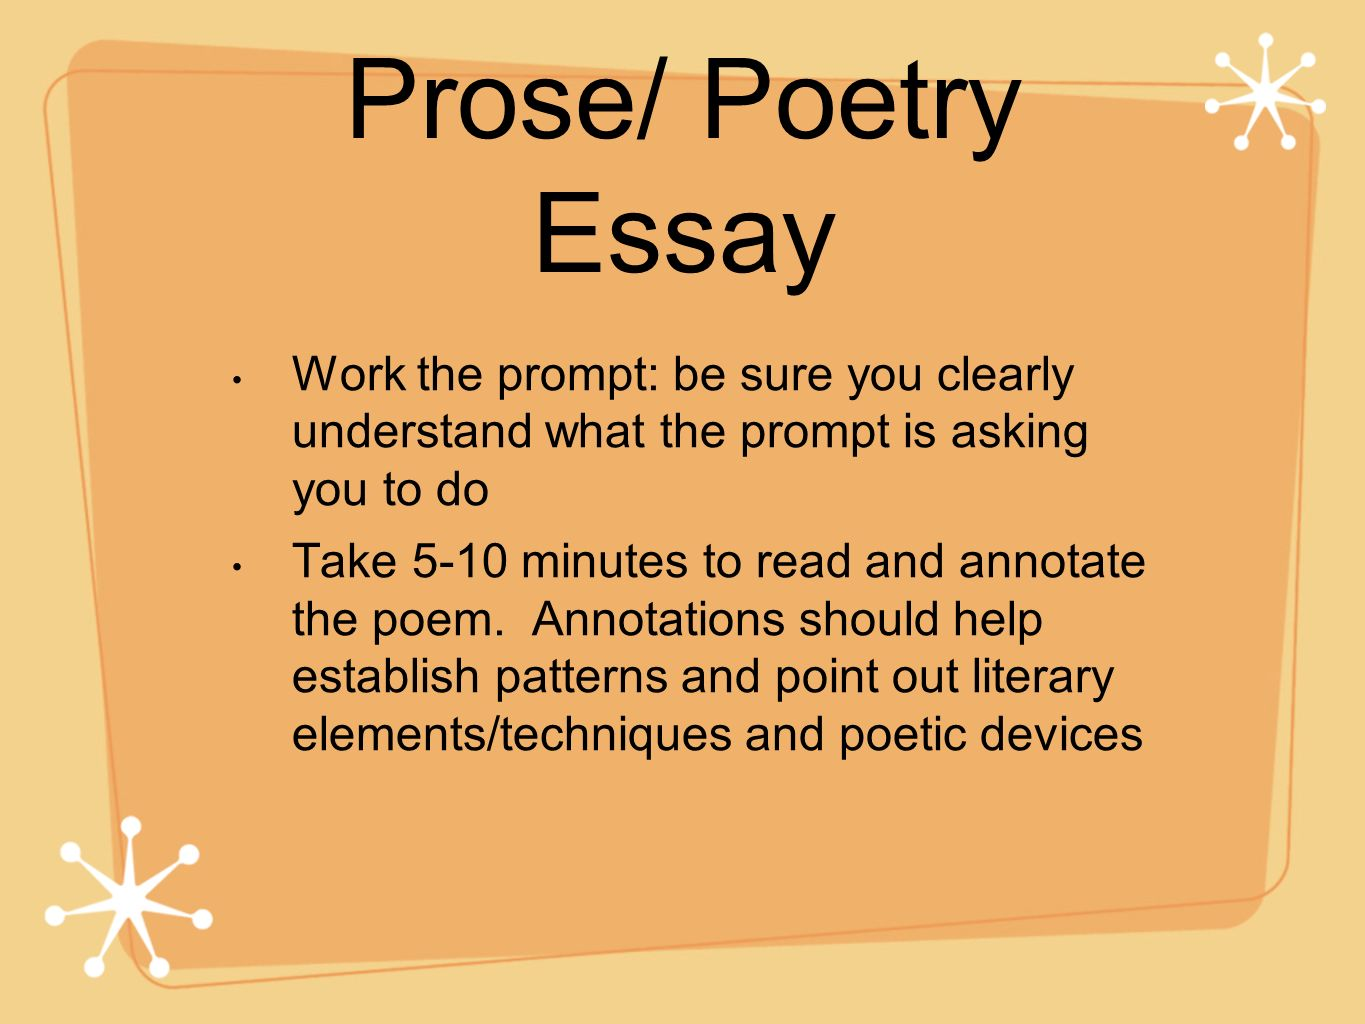 literature essay help Learning to write critical or expository essays on call takes time and practice here are some key guidelines to remember in learning to write a critical essay: reading is not a substitute for writing, but it does help lay the foundation that makes good writing possible.